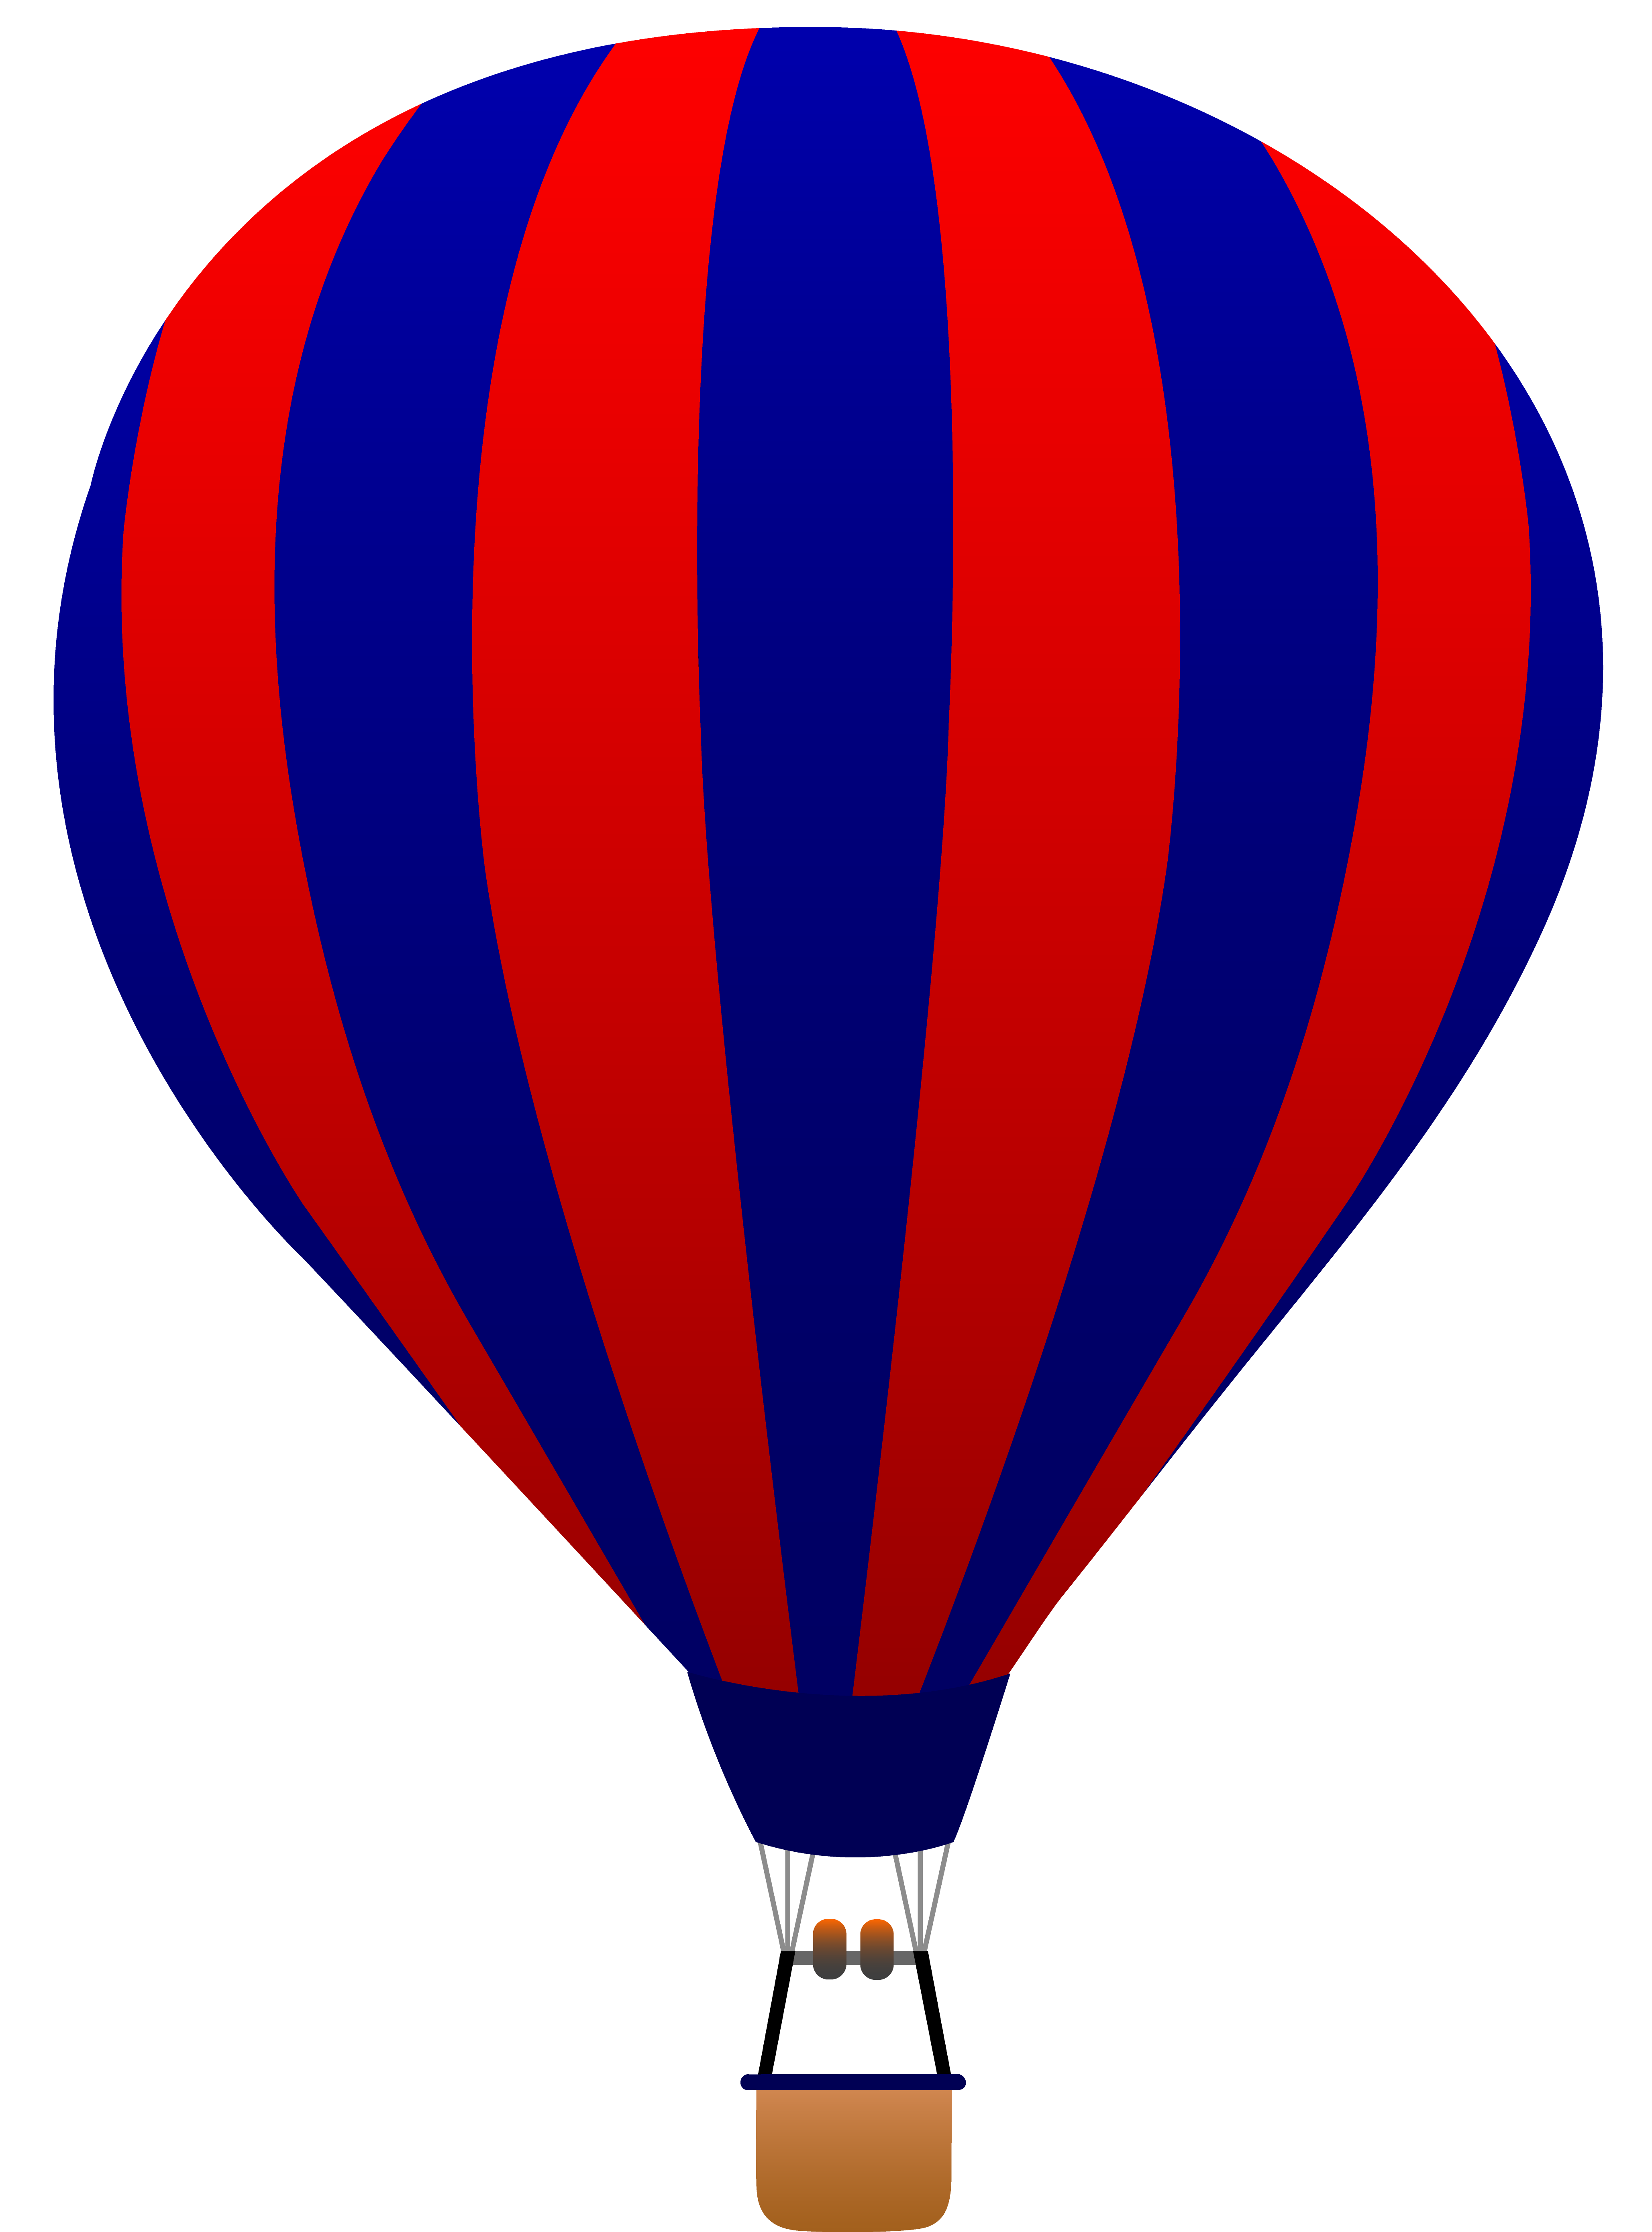 Free Hot Air Balloon Clipart, Download Free Clip Art, Free.